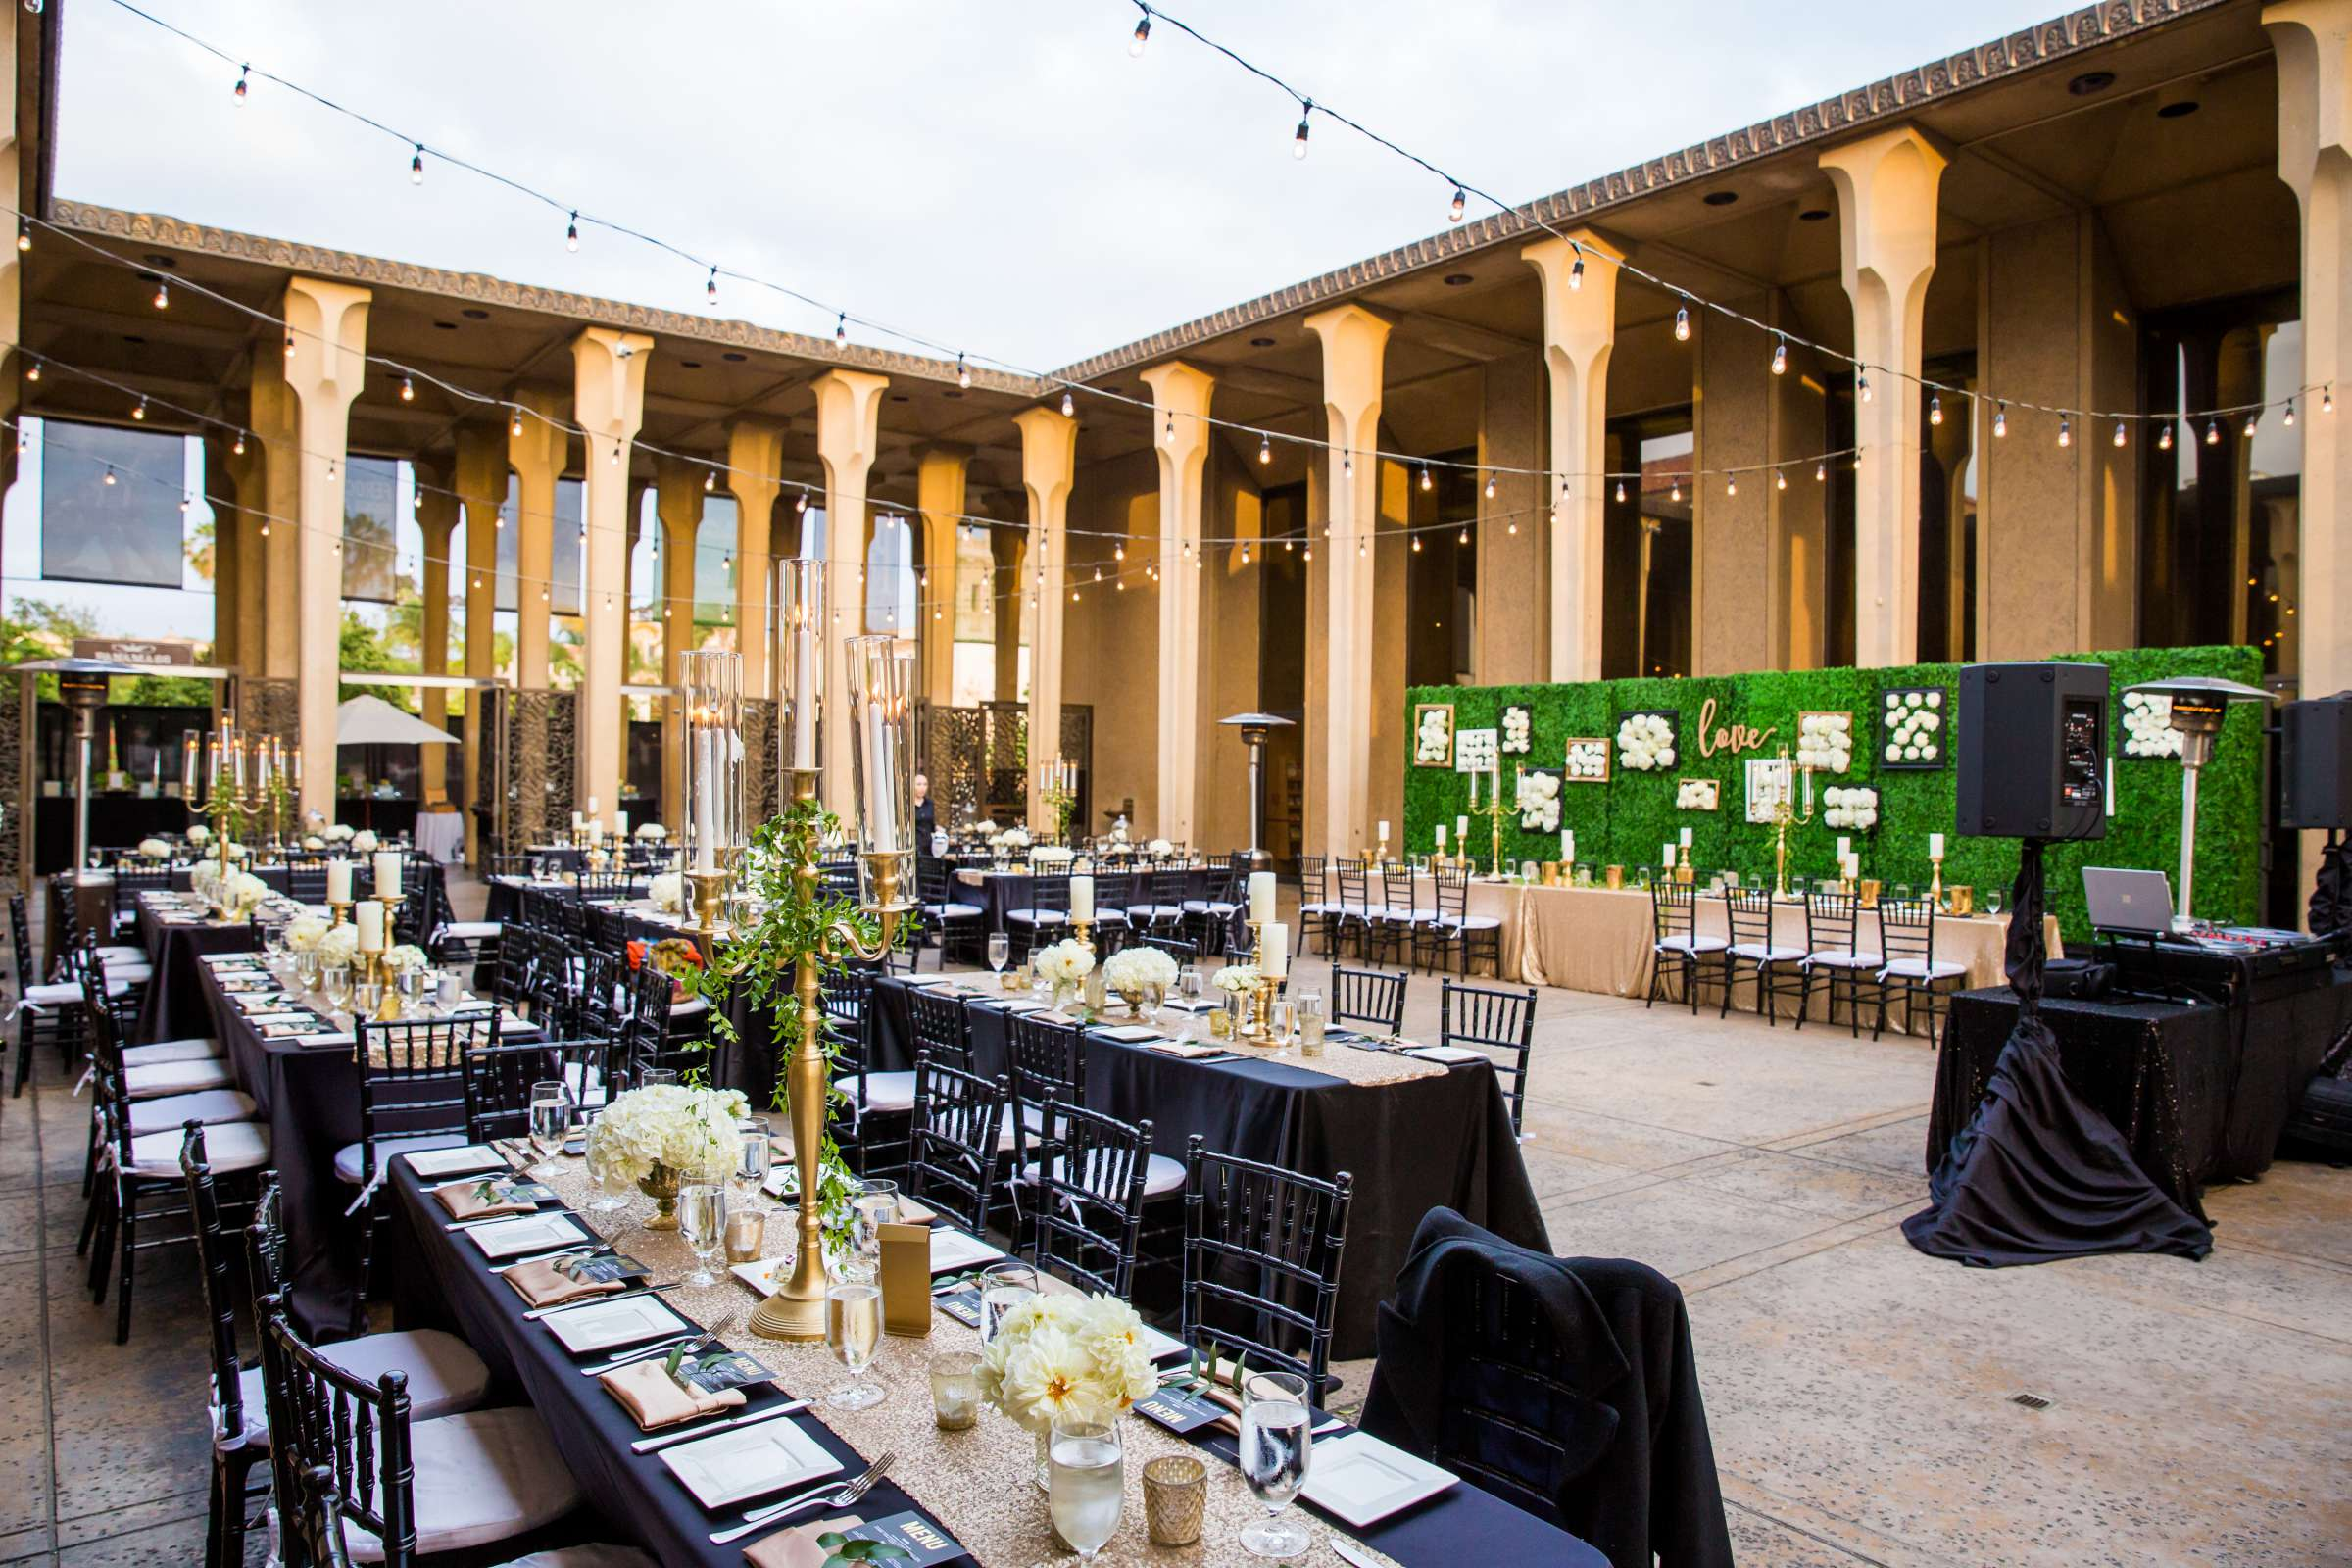 San Diego Museum of Art Wedding coordinated by First Comes Love Weddings & Events, Ruthie and Larry Wedding Photo #236896 by True Photography